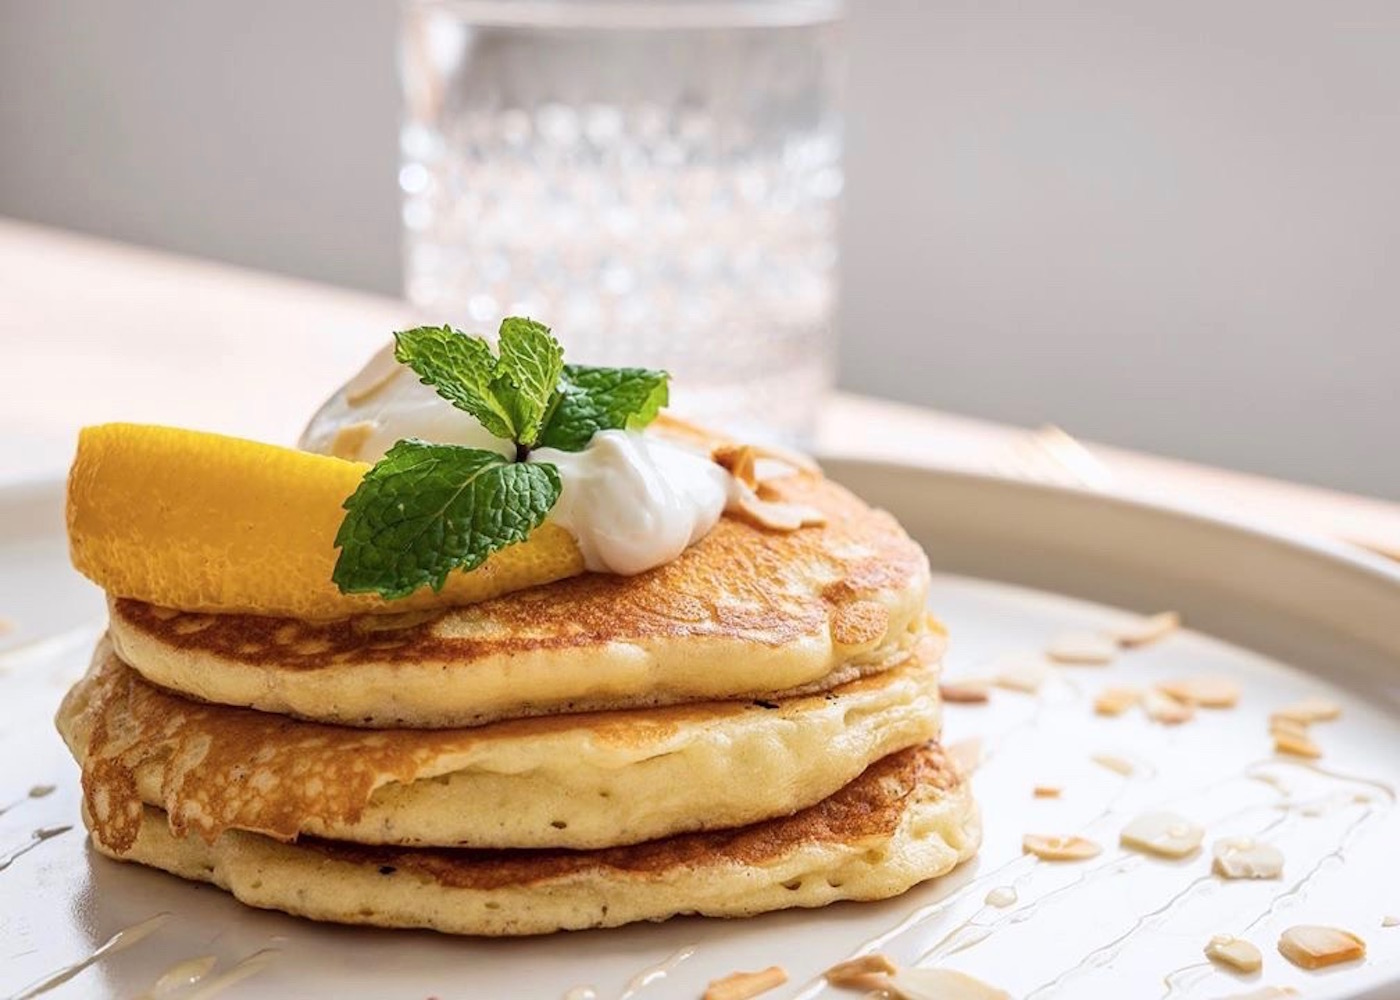 Coconut Hotcakes at Honey Kitchen Cafe & Restaurant in Pererenan - Canggu, Bali - Indonesia